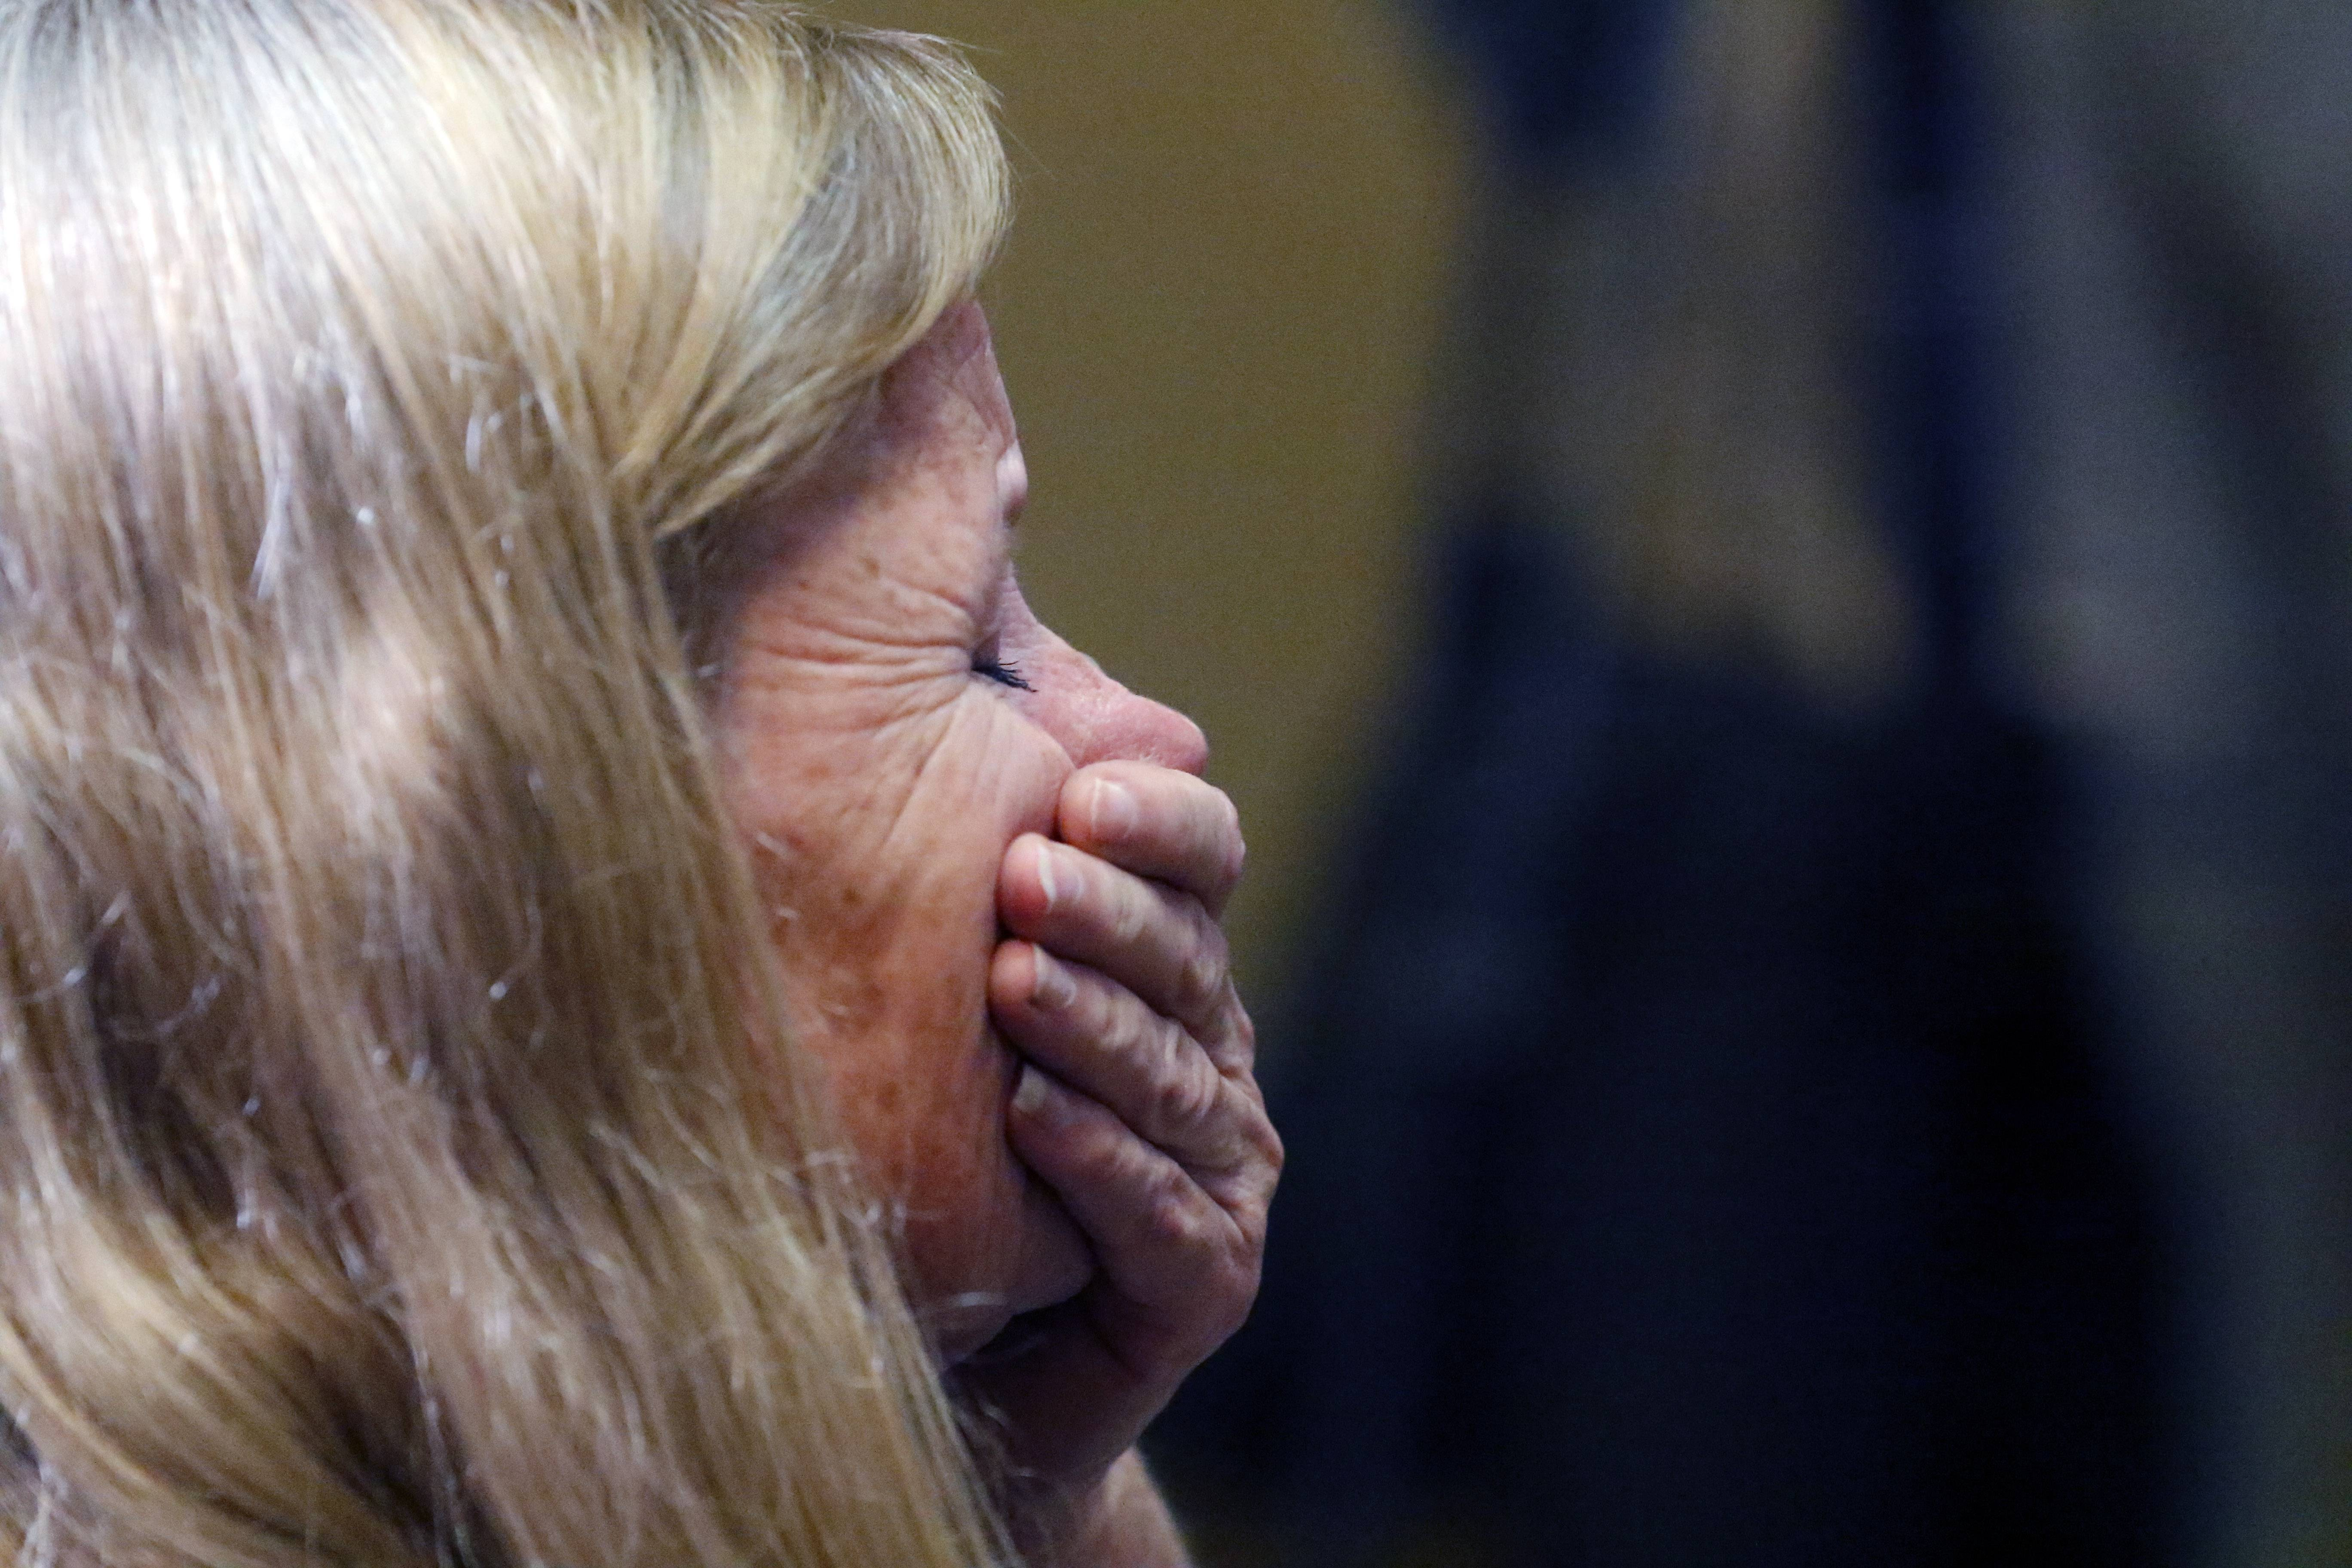 Cheryl Calusinski reacts during a Friday news conference after a Lake County judge refused to grant a new trial to her daughter Melissa Calusinski in the murder of a toddler at Lincolnshire day care center.